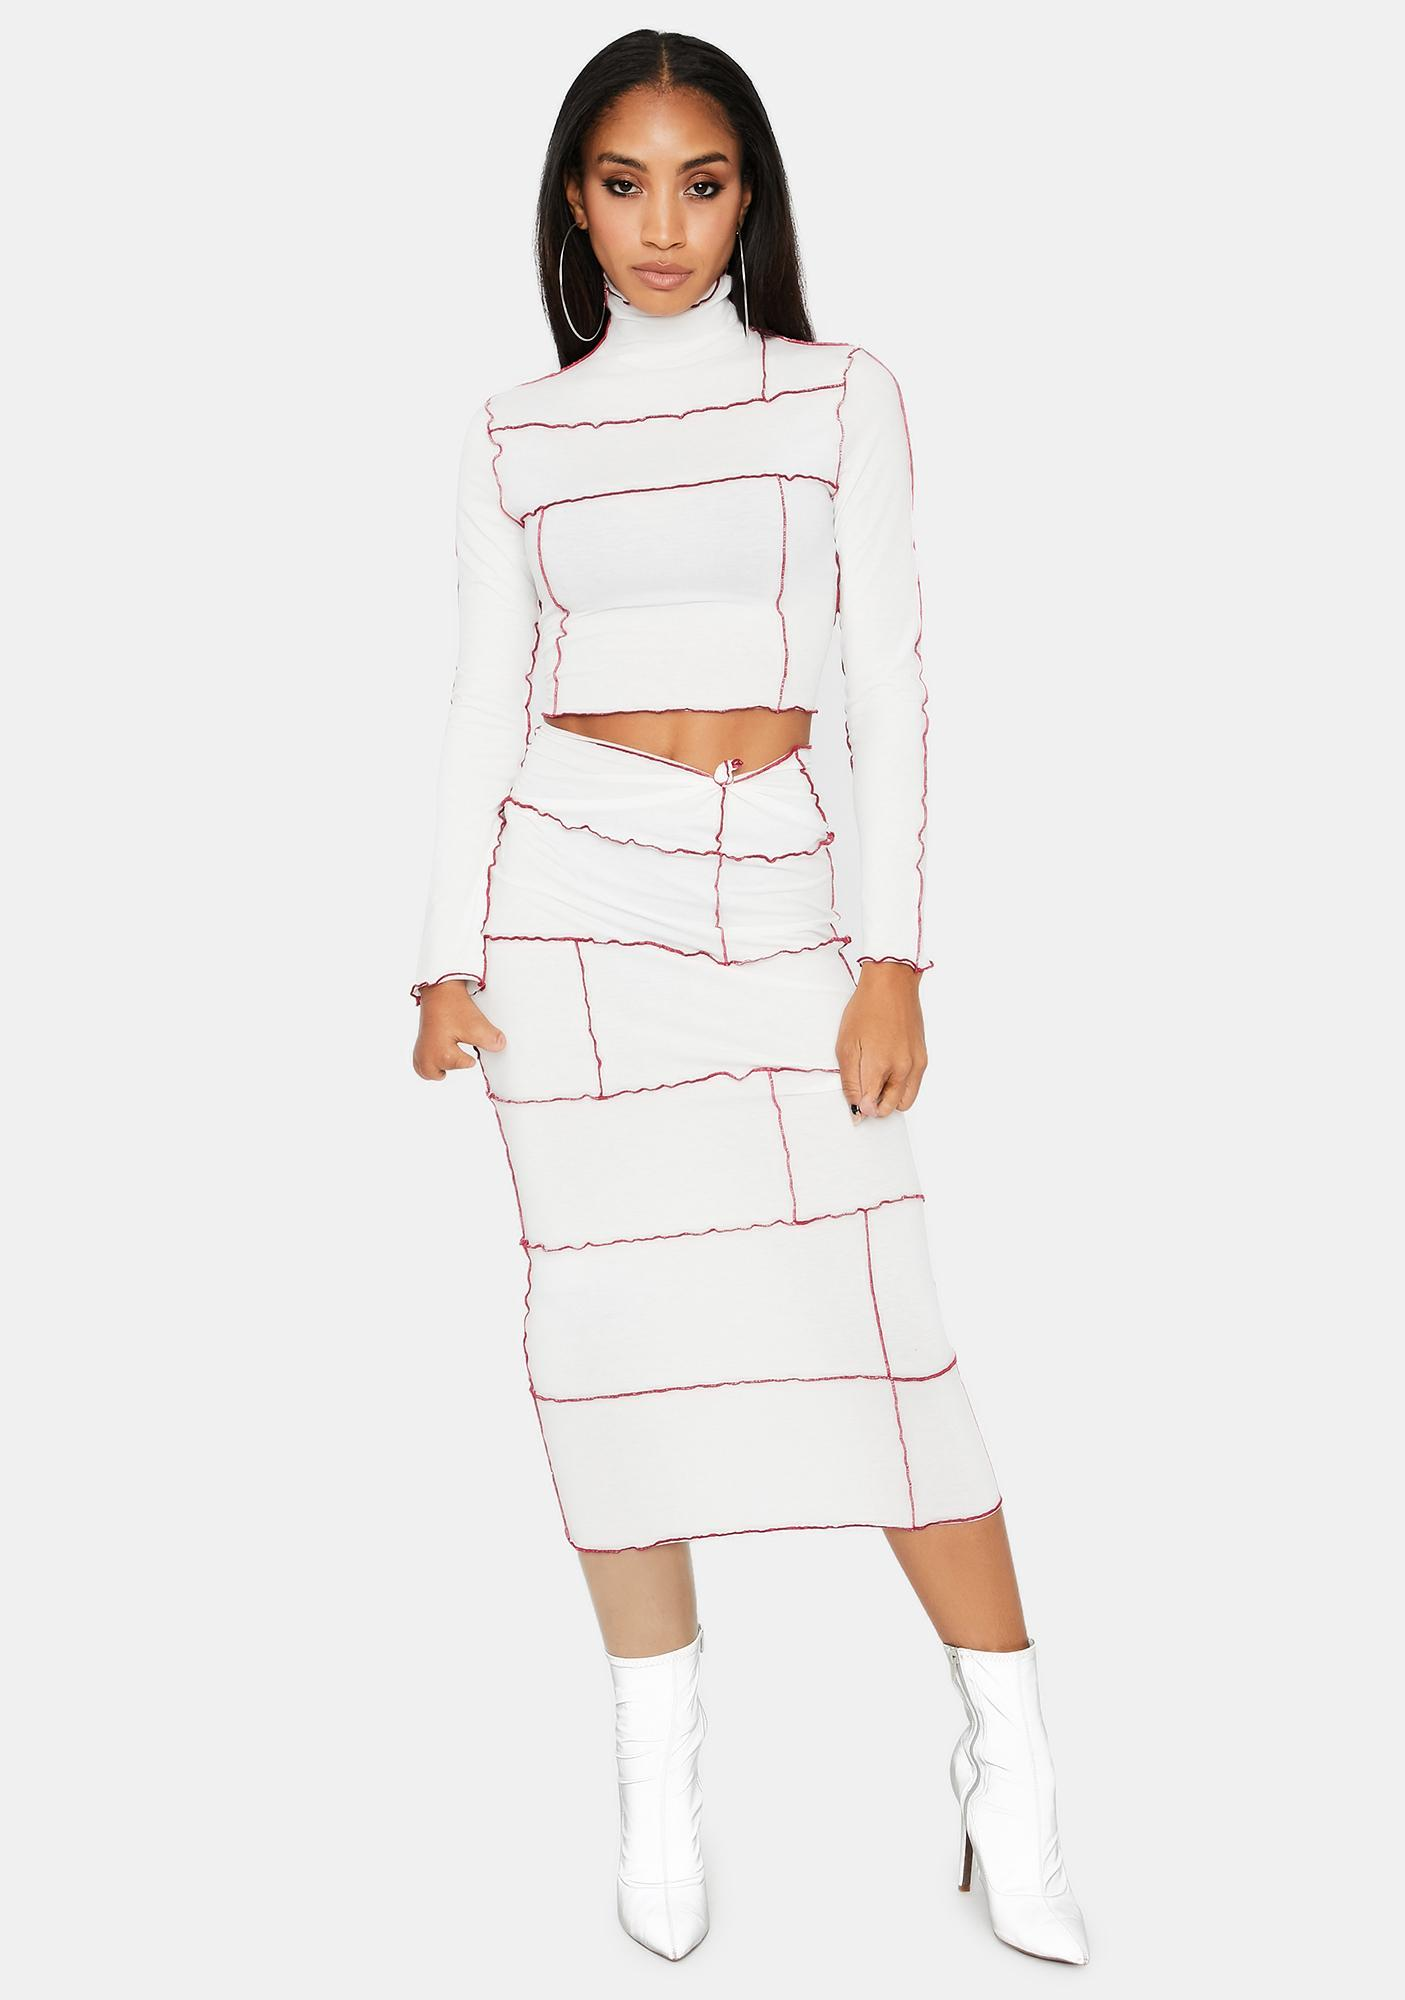 Kiki Riki Ivory Back In Town Skirt Set